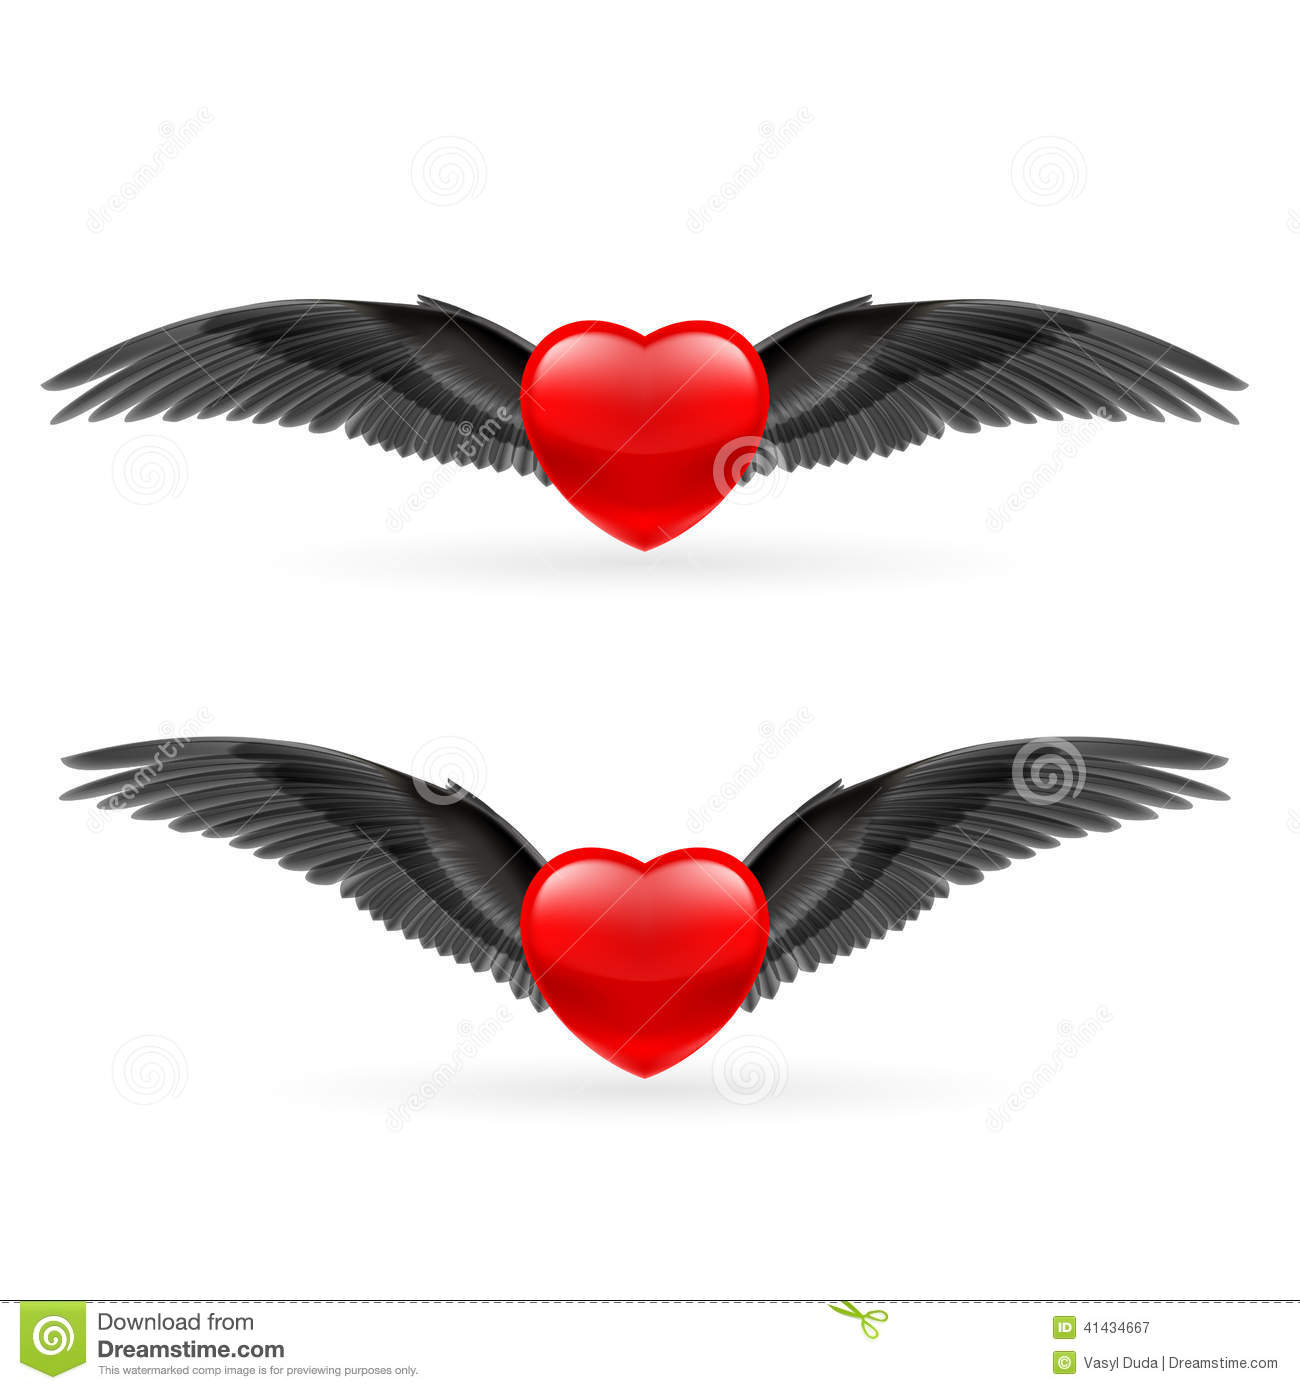 Two Hearts and a Crow